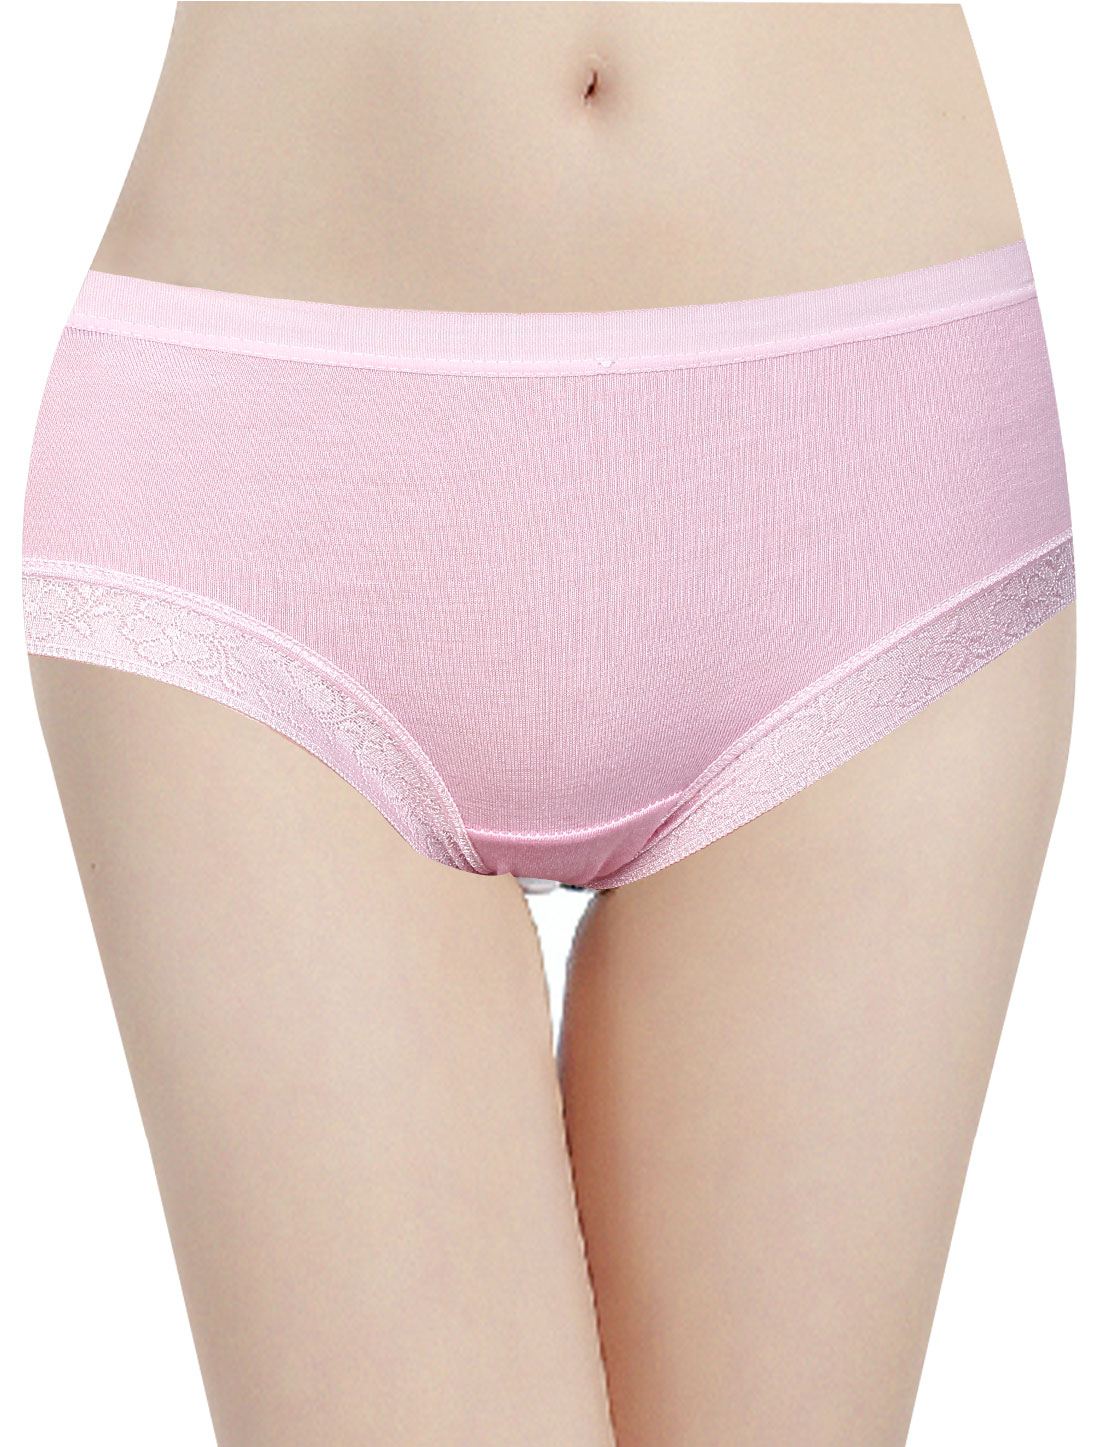 Elastic Waist Sweet NEW Underwear Briefs for Ladies Pink XS